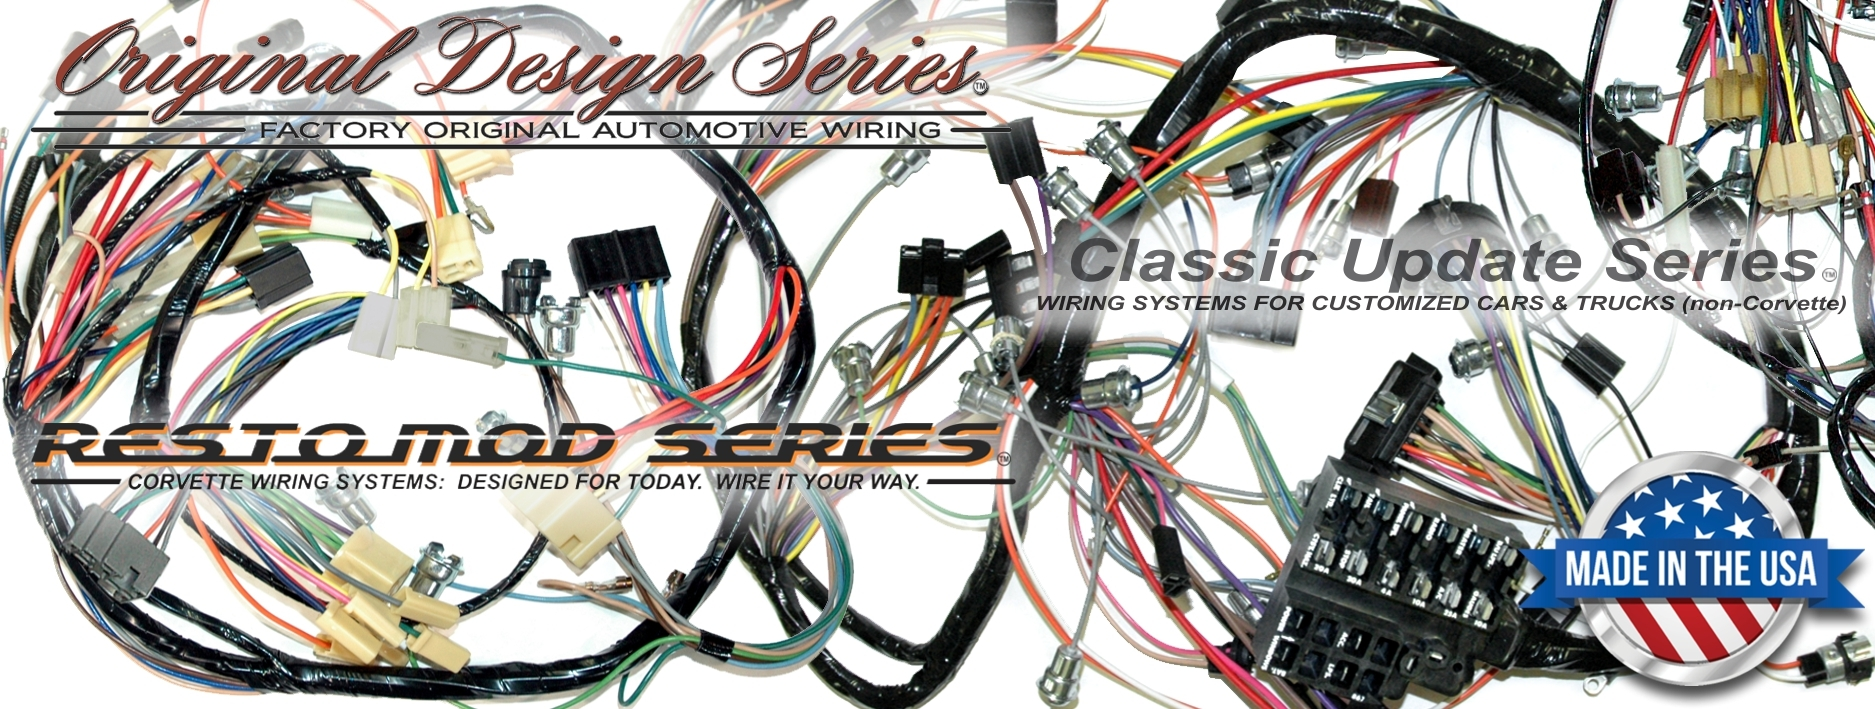 new header wiring_harnesses exact oem reproduction wiring harnesses and restomod wiring c3 corvette engine wiring harness at fashall.co